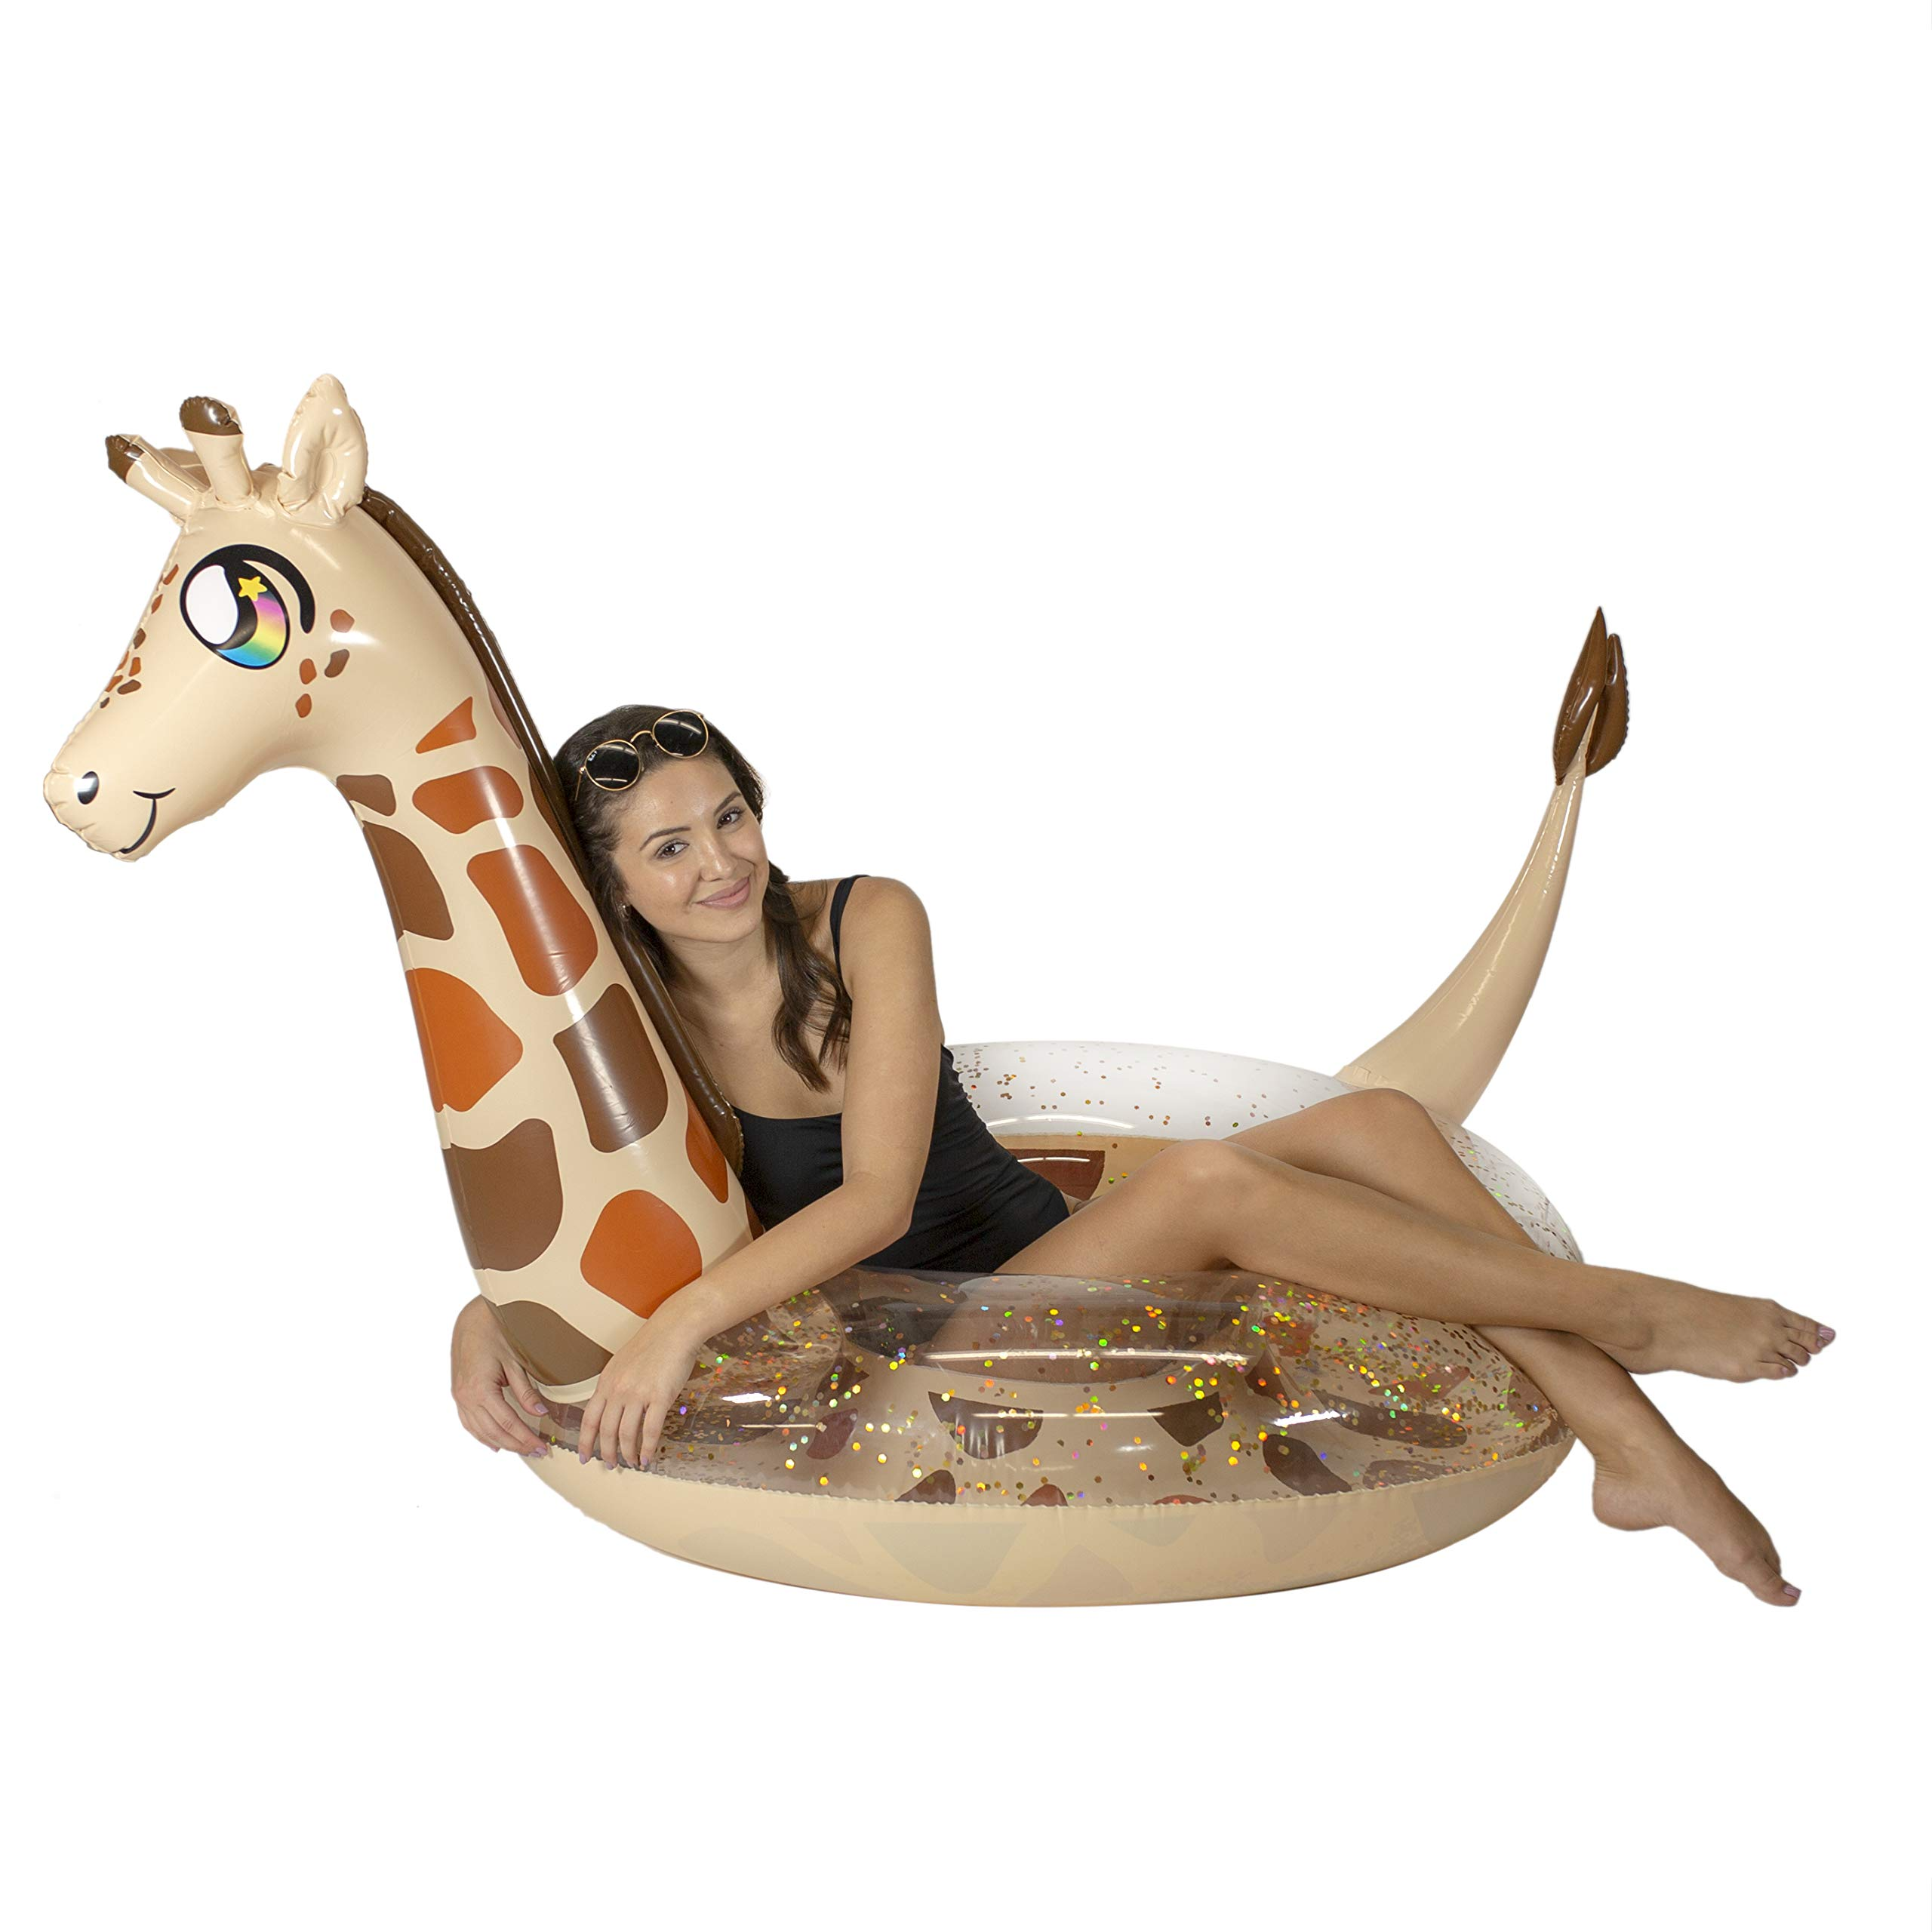 Poolcandy Inflatable Glitter Animal Collection Giraffe Jumbo Pool Float | Swim Ring - Measuring 56'' x 50'' x 50'' - Summer Pool Raft Lounge for Adults & Kids by Poolcandy